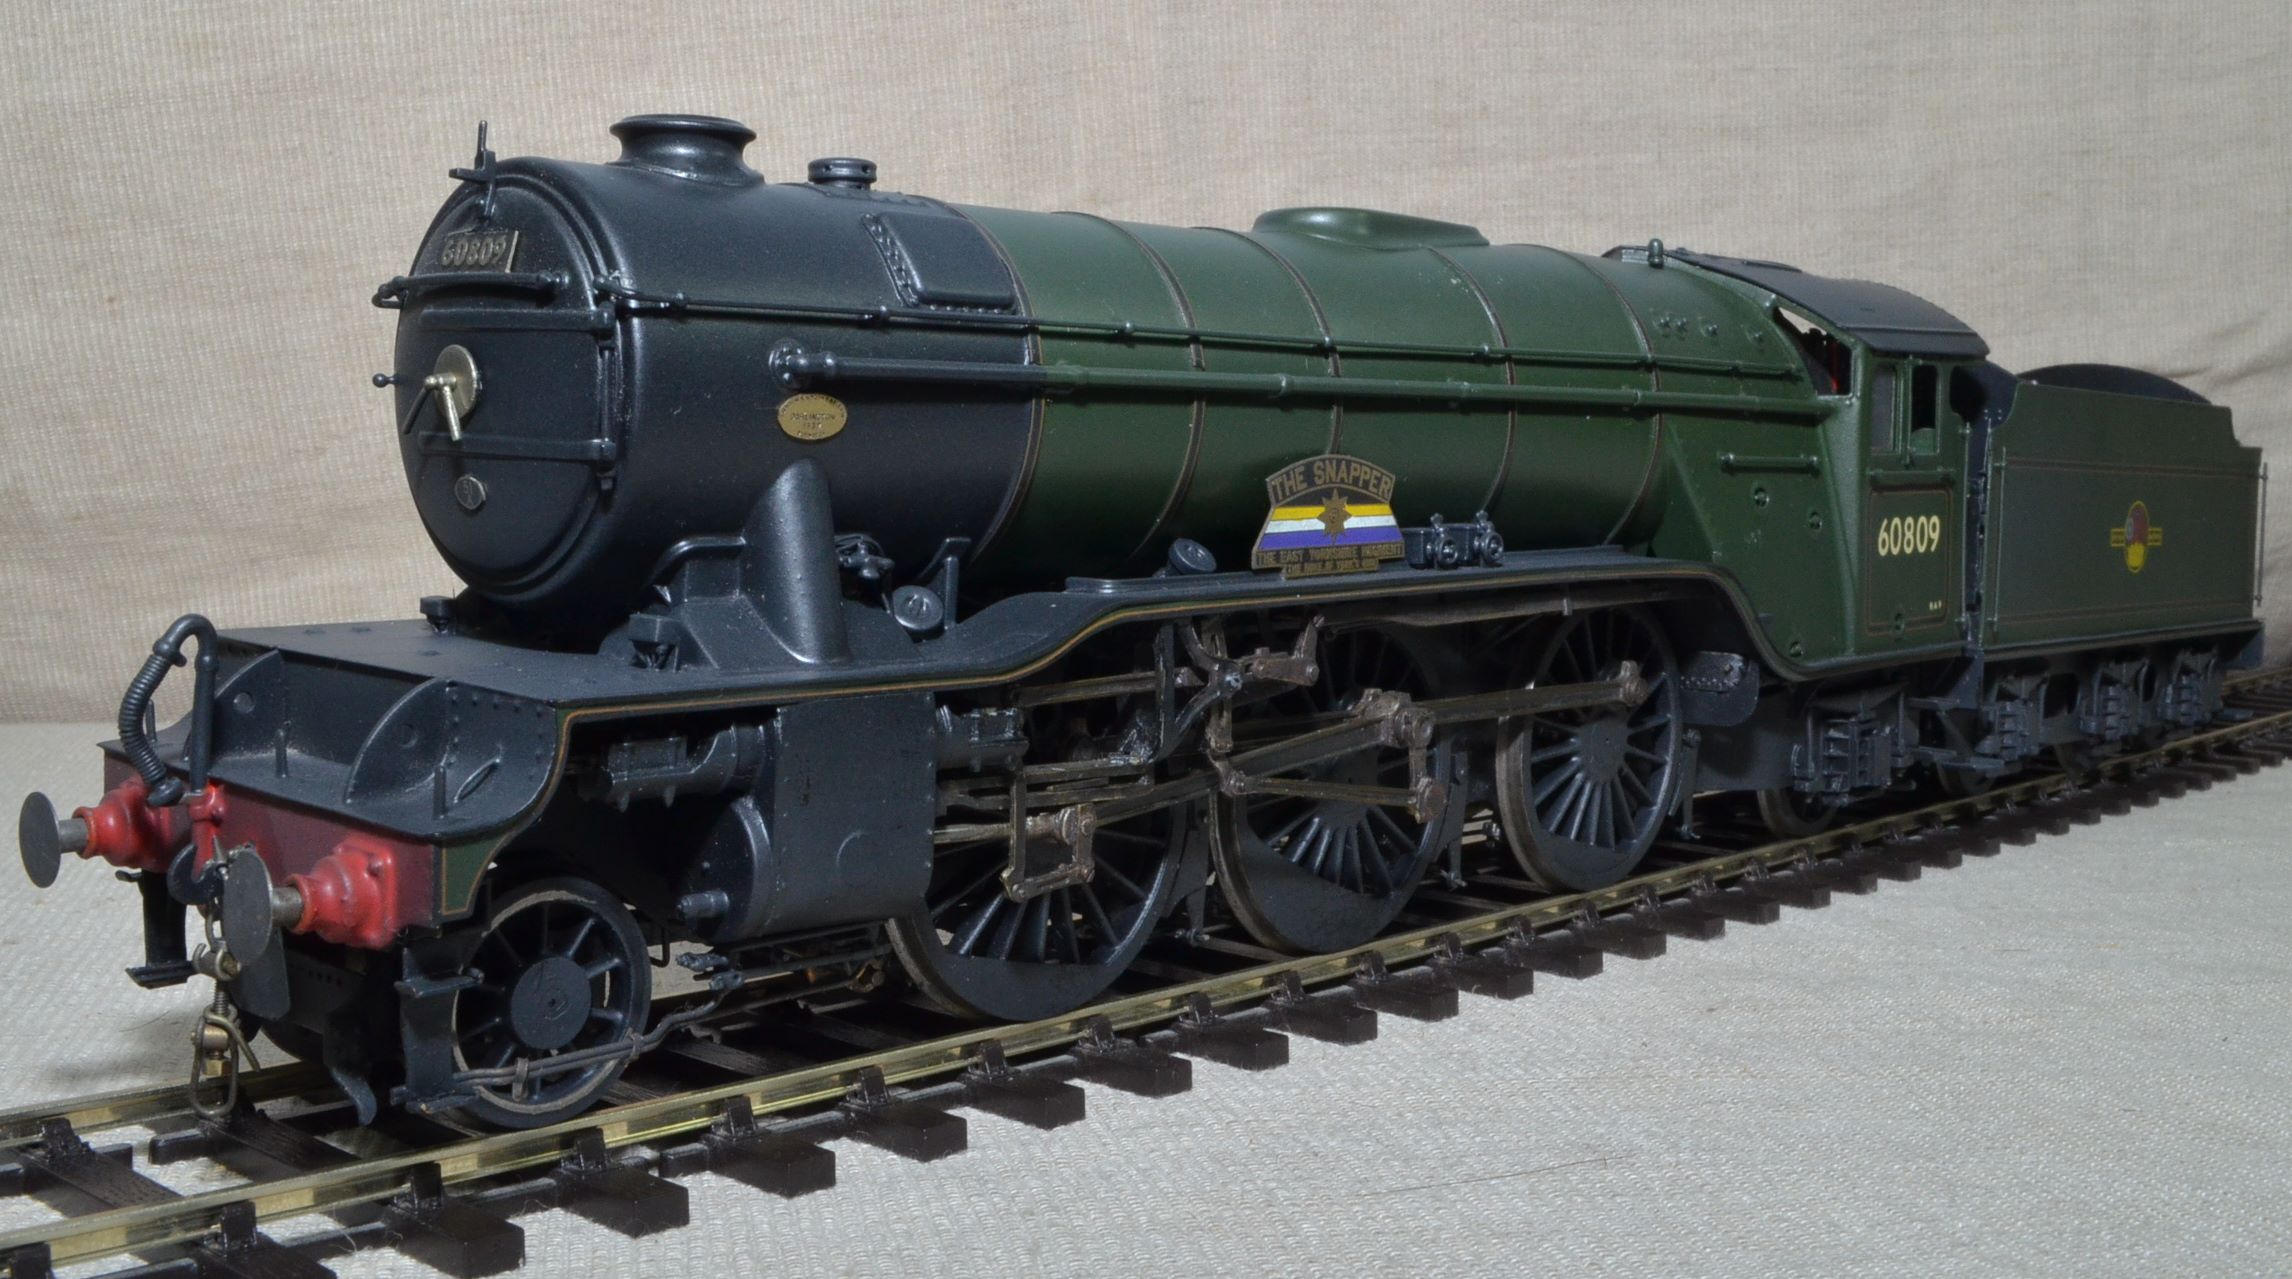 A very good well built older model, almost certainly from a Martin Finney kit, of a BR ex-LNER V2 2-6-2 No. 60809 'The Snapper'. In weathered BR green with late tender crest and shedplate 51A Darlington.